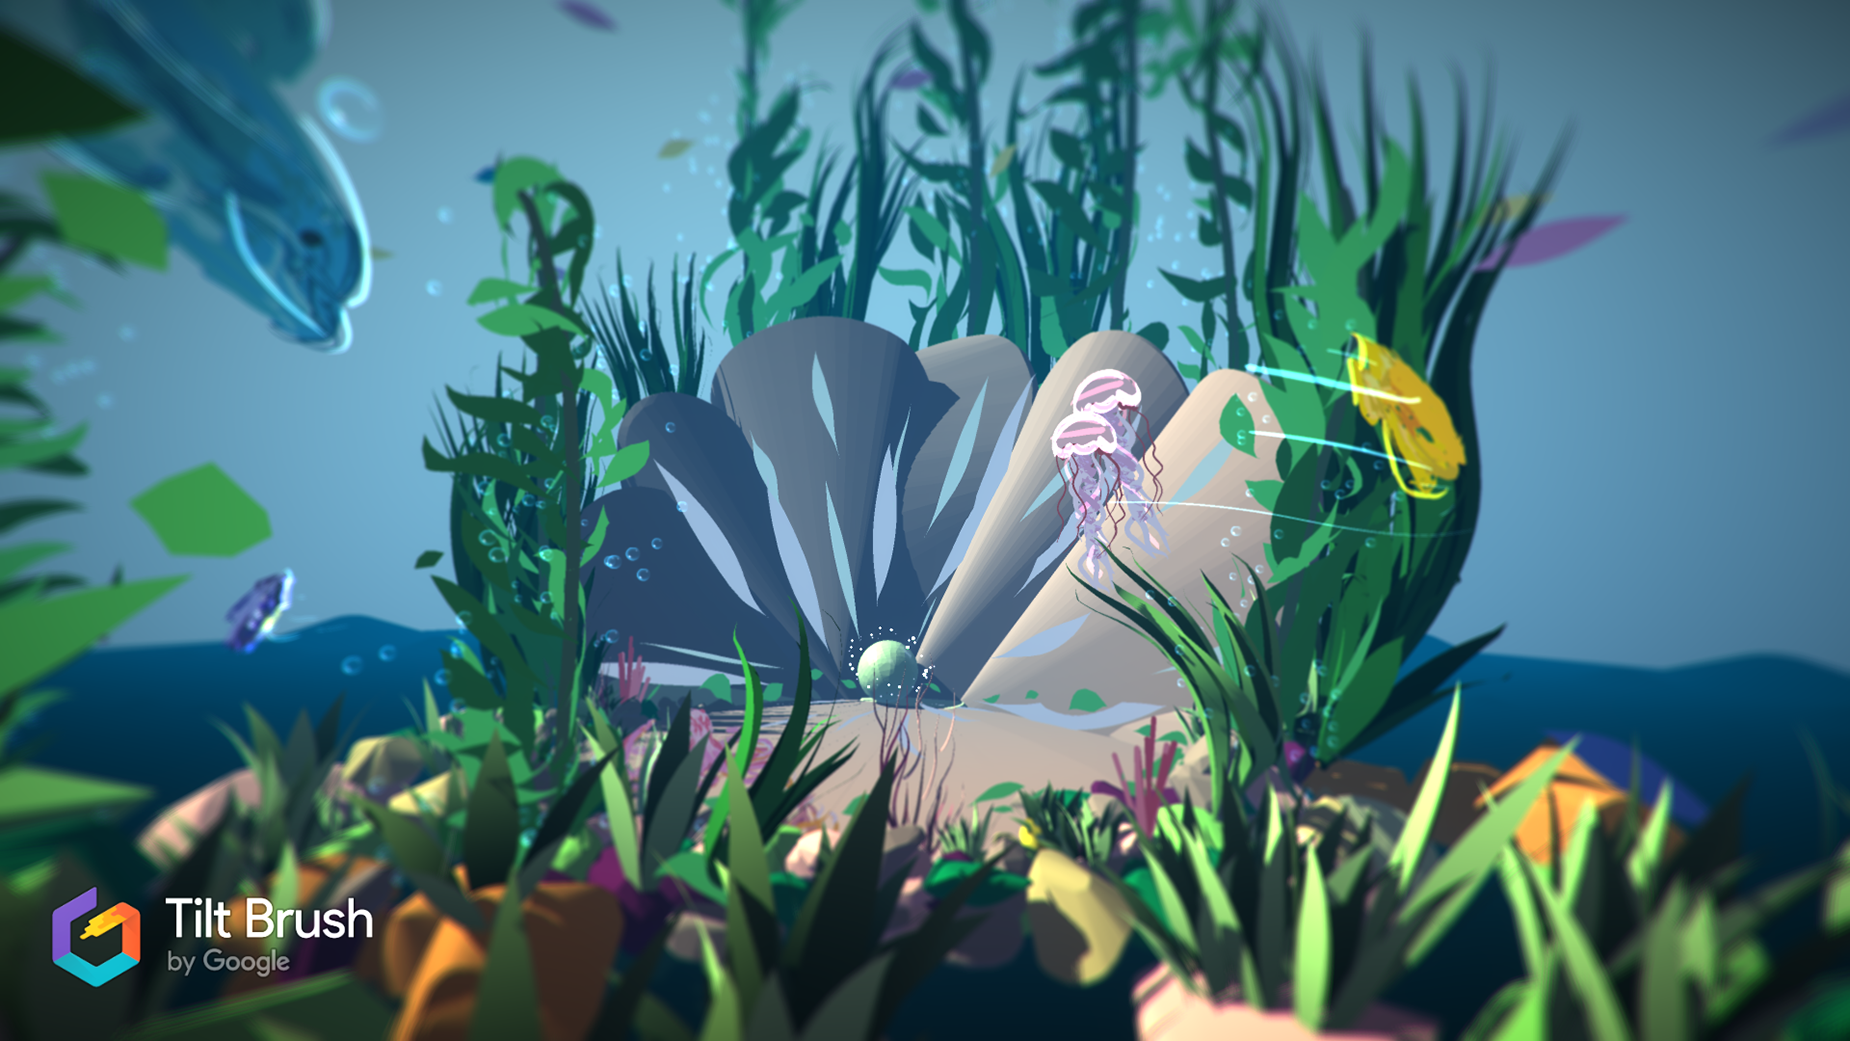 A detailed underwater VR scene, with plants, dolphins and jellyfish.